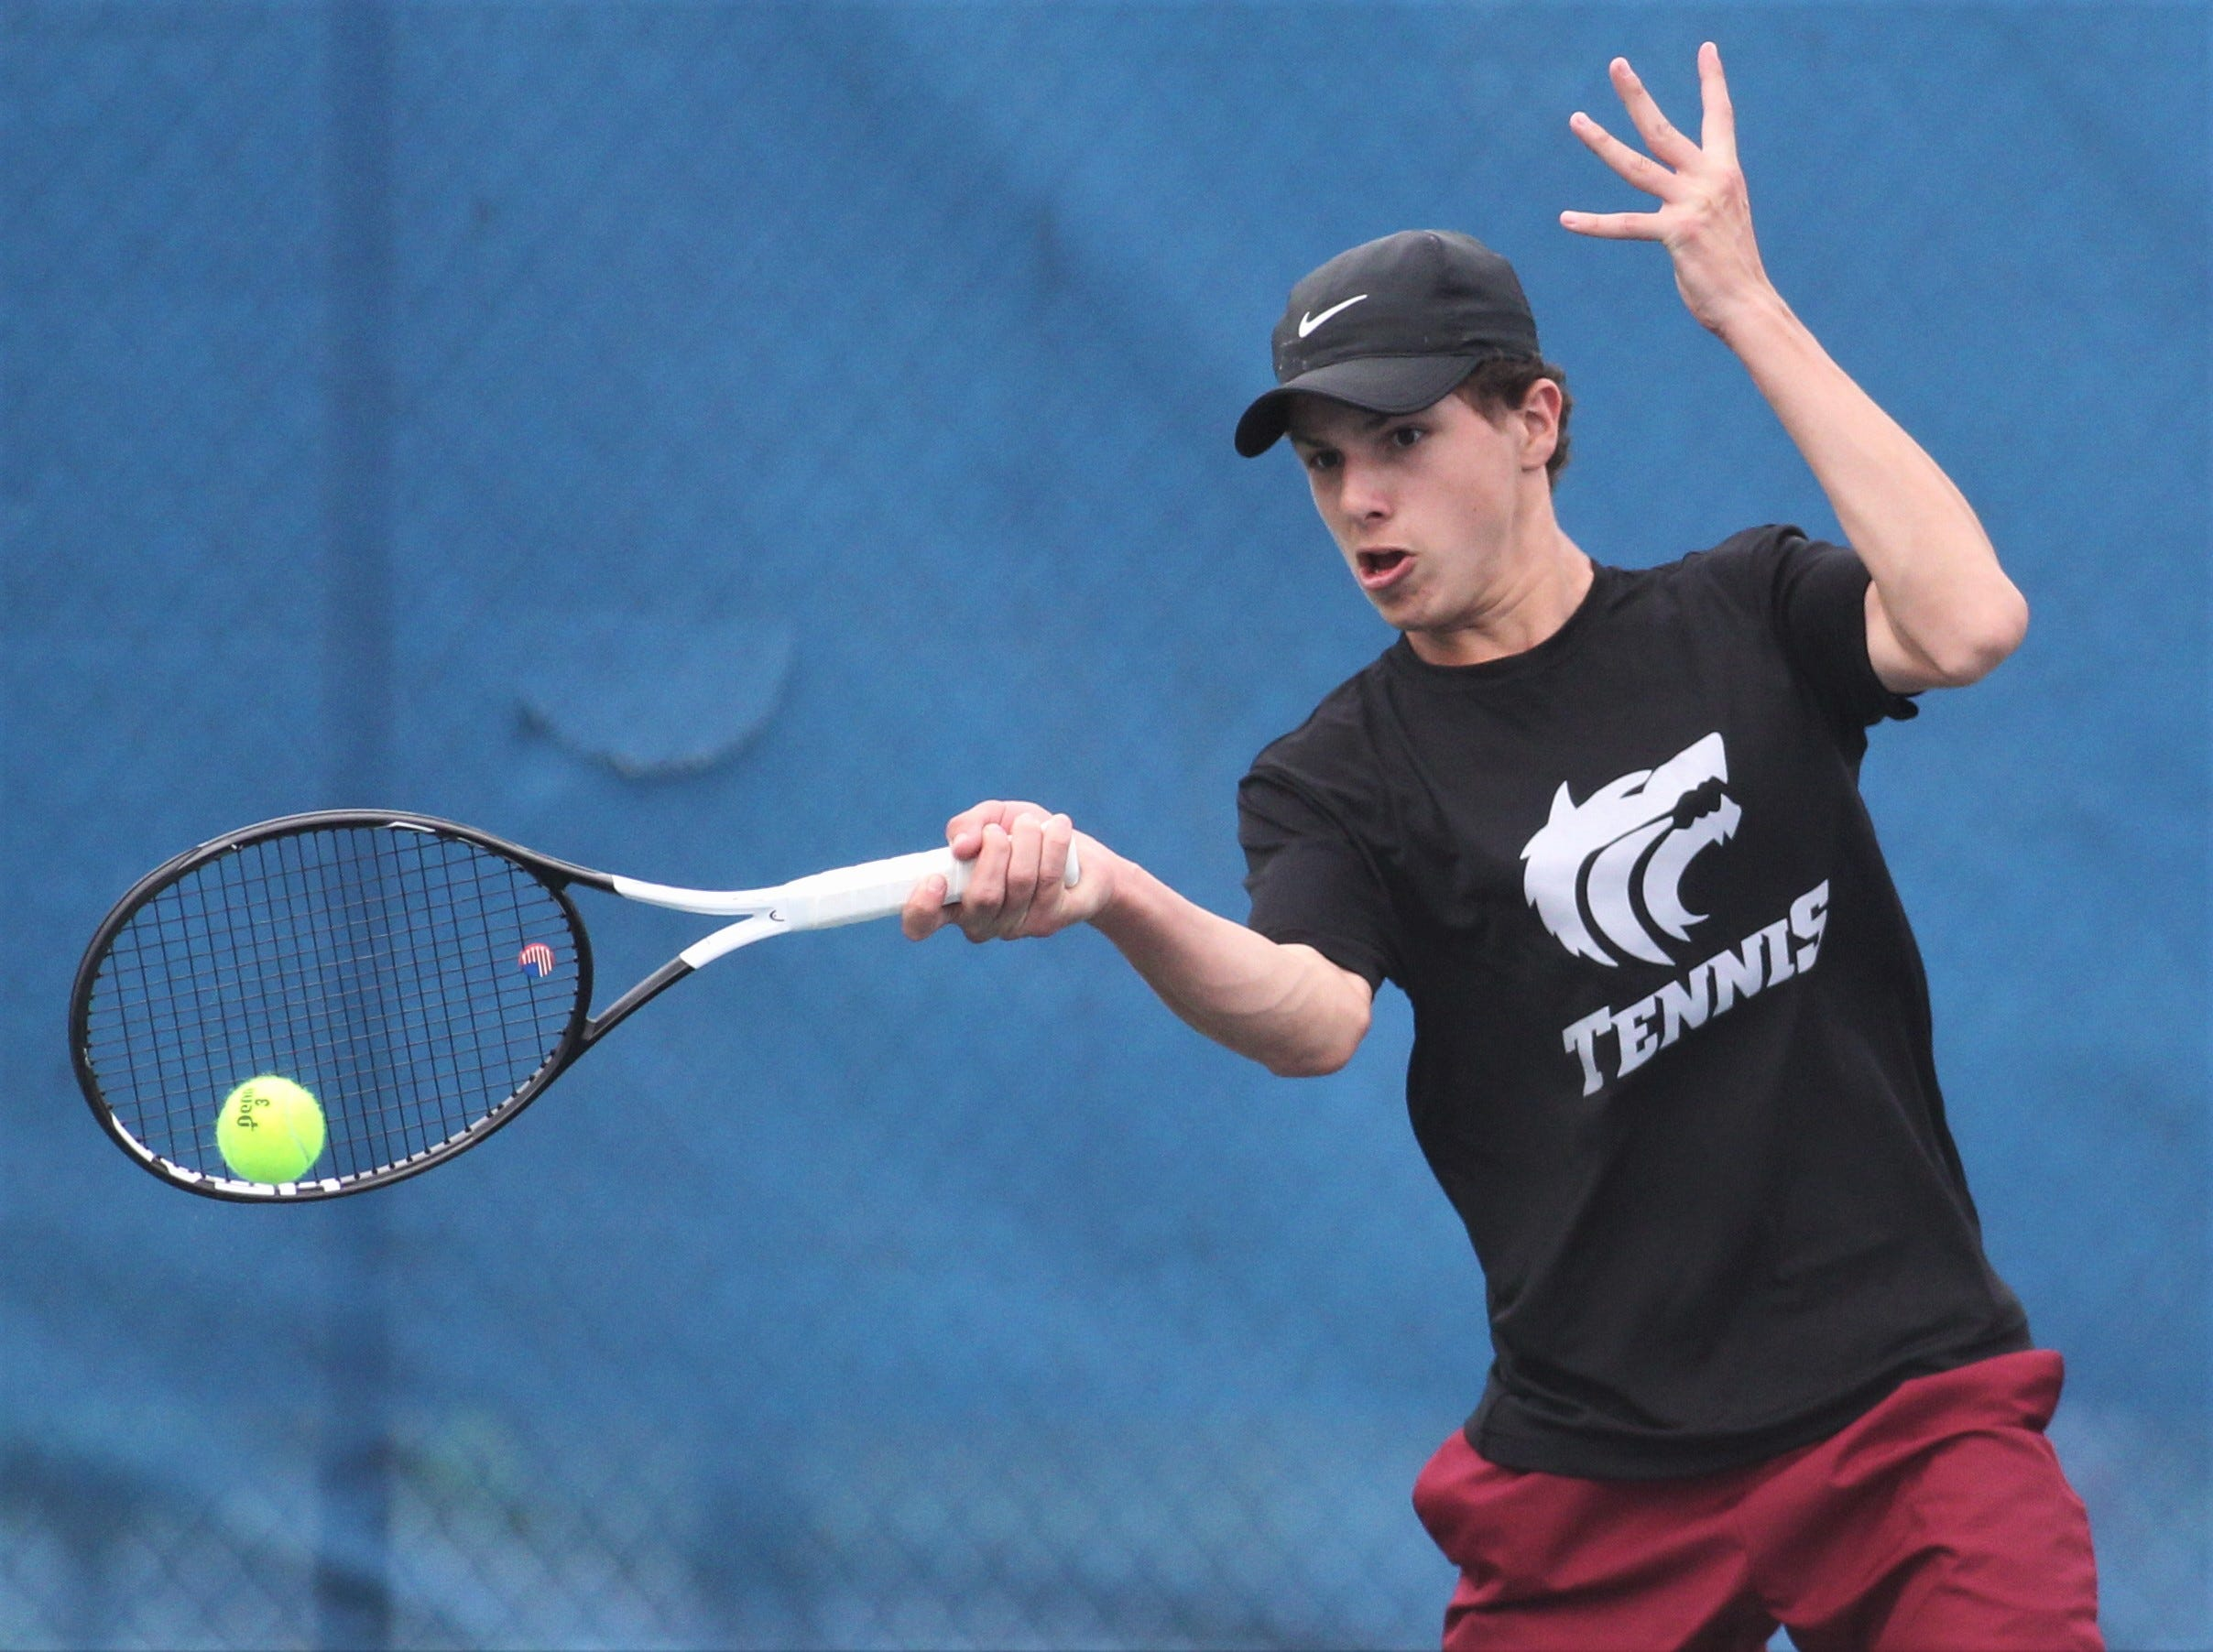 Chiles sophomore Chris DeCardenas plays during the high school boys and girls city tennis tournament at Tom Brown Park on Thursday, March 14, 2019.